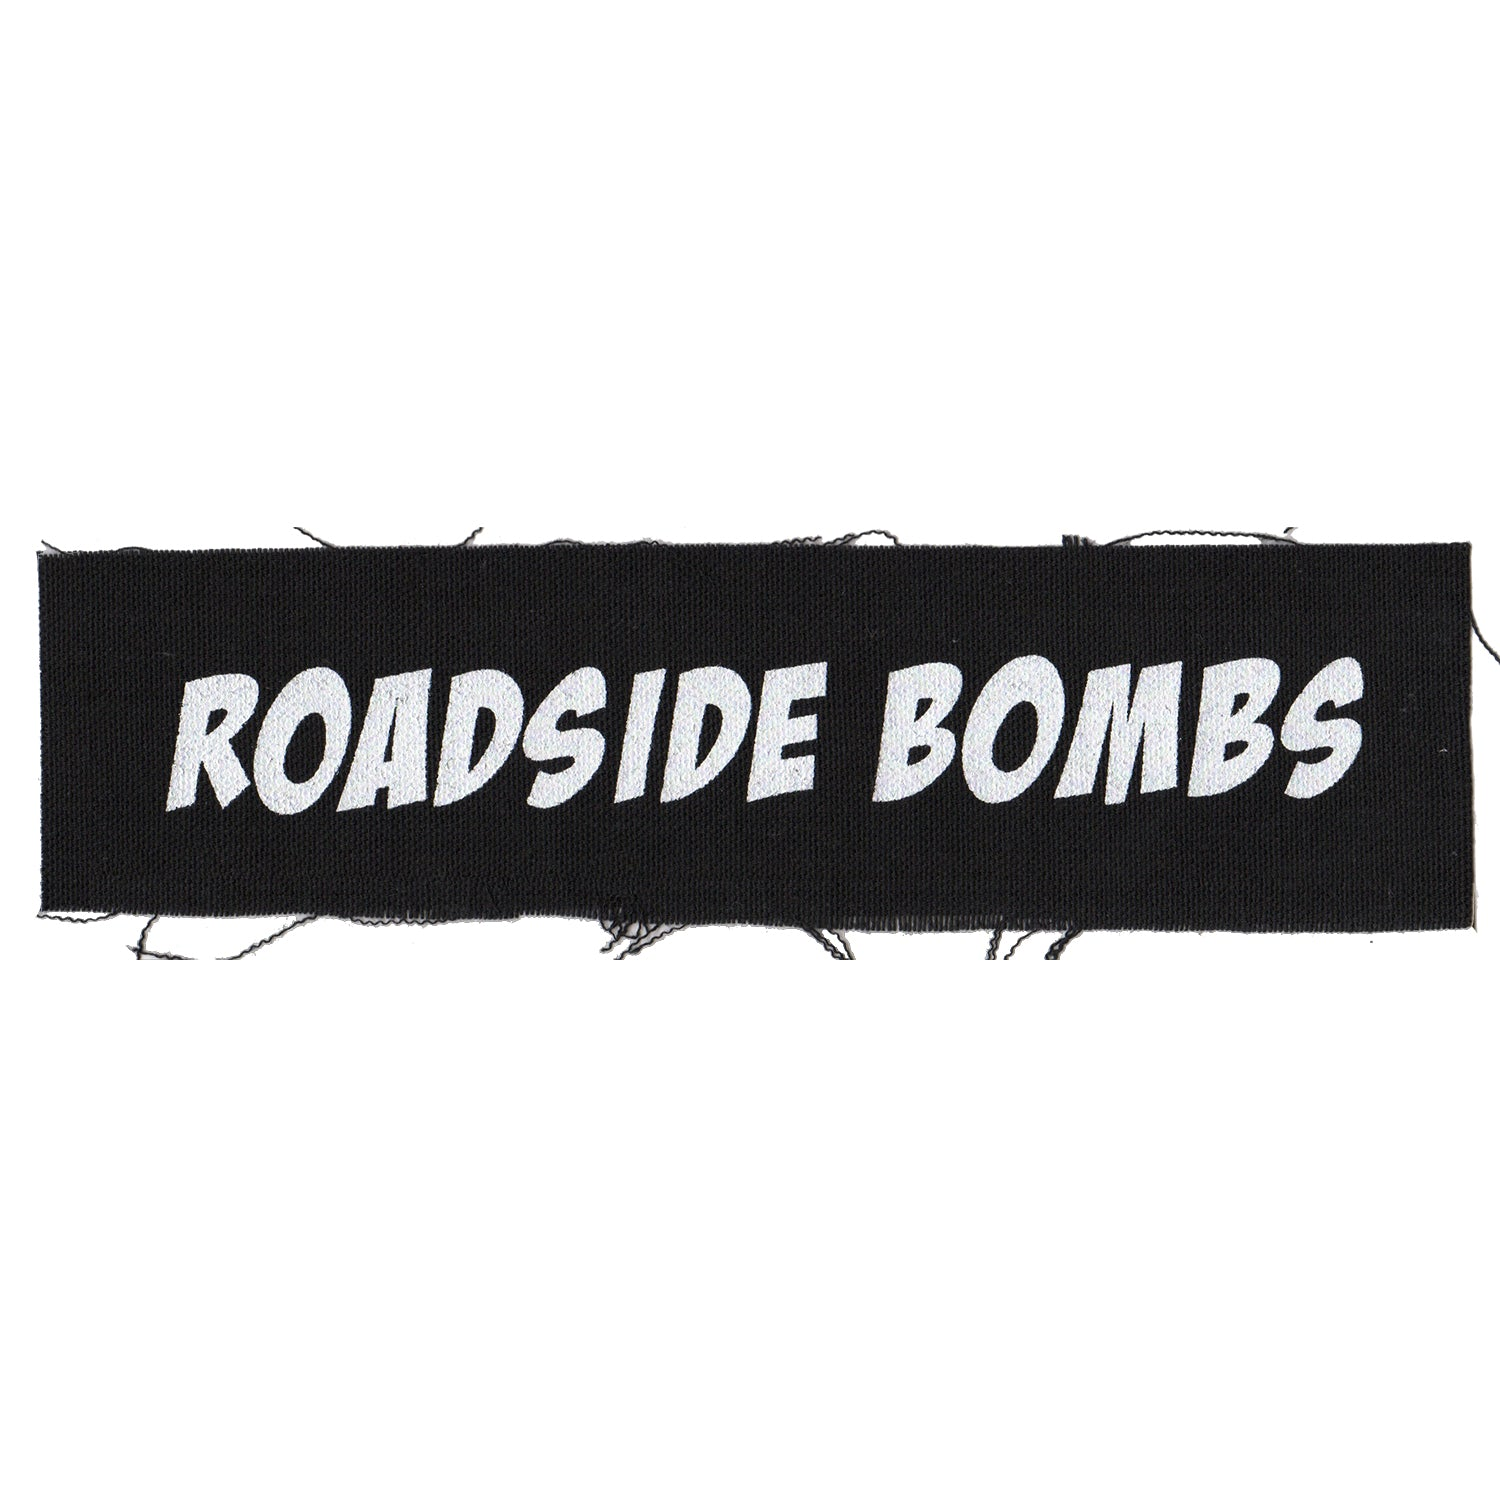 "Roadside Bombs - Text Logo - Black - Patch - Cloth - Screenprinted - 8"" x 3"""